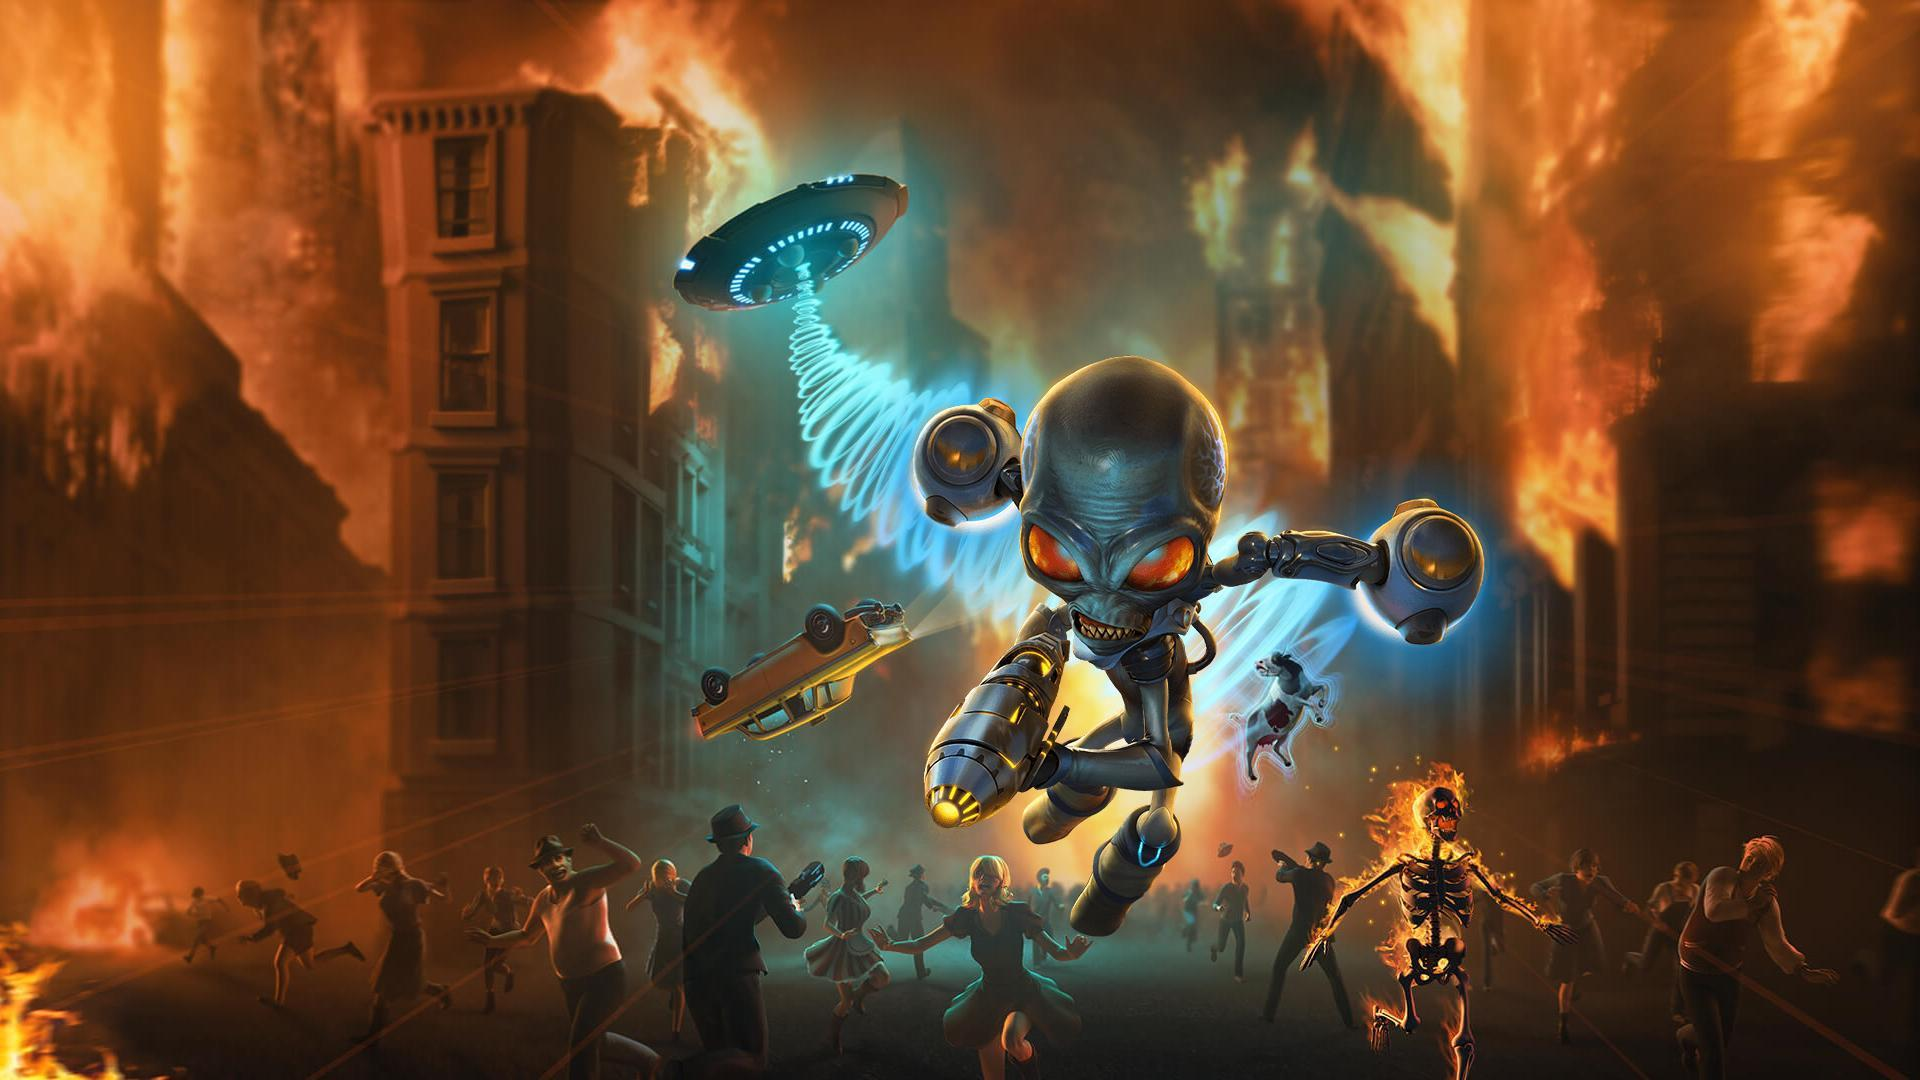 destroy all humans video game wallpaper 71428